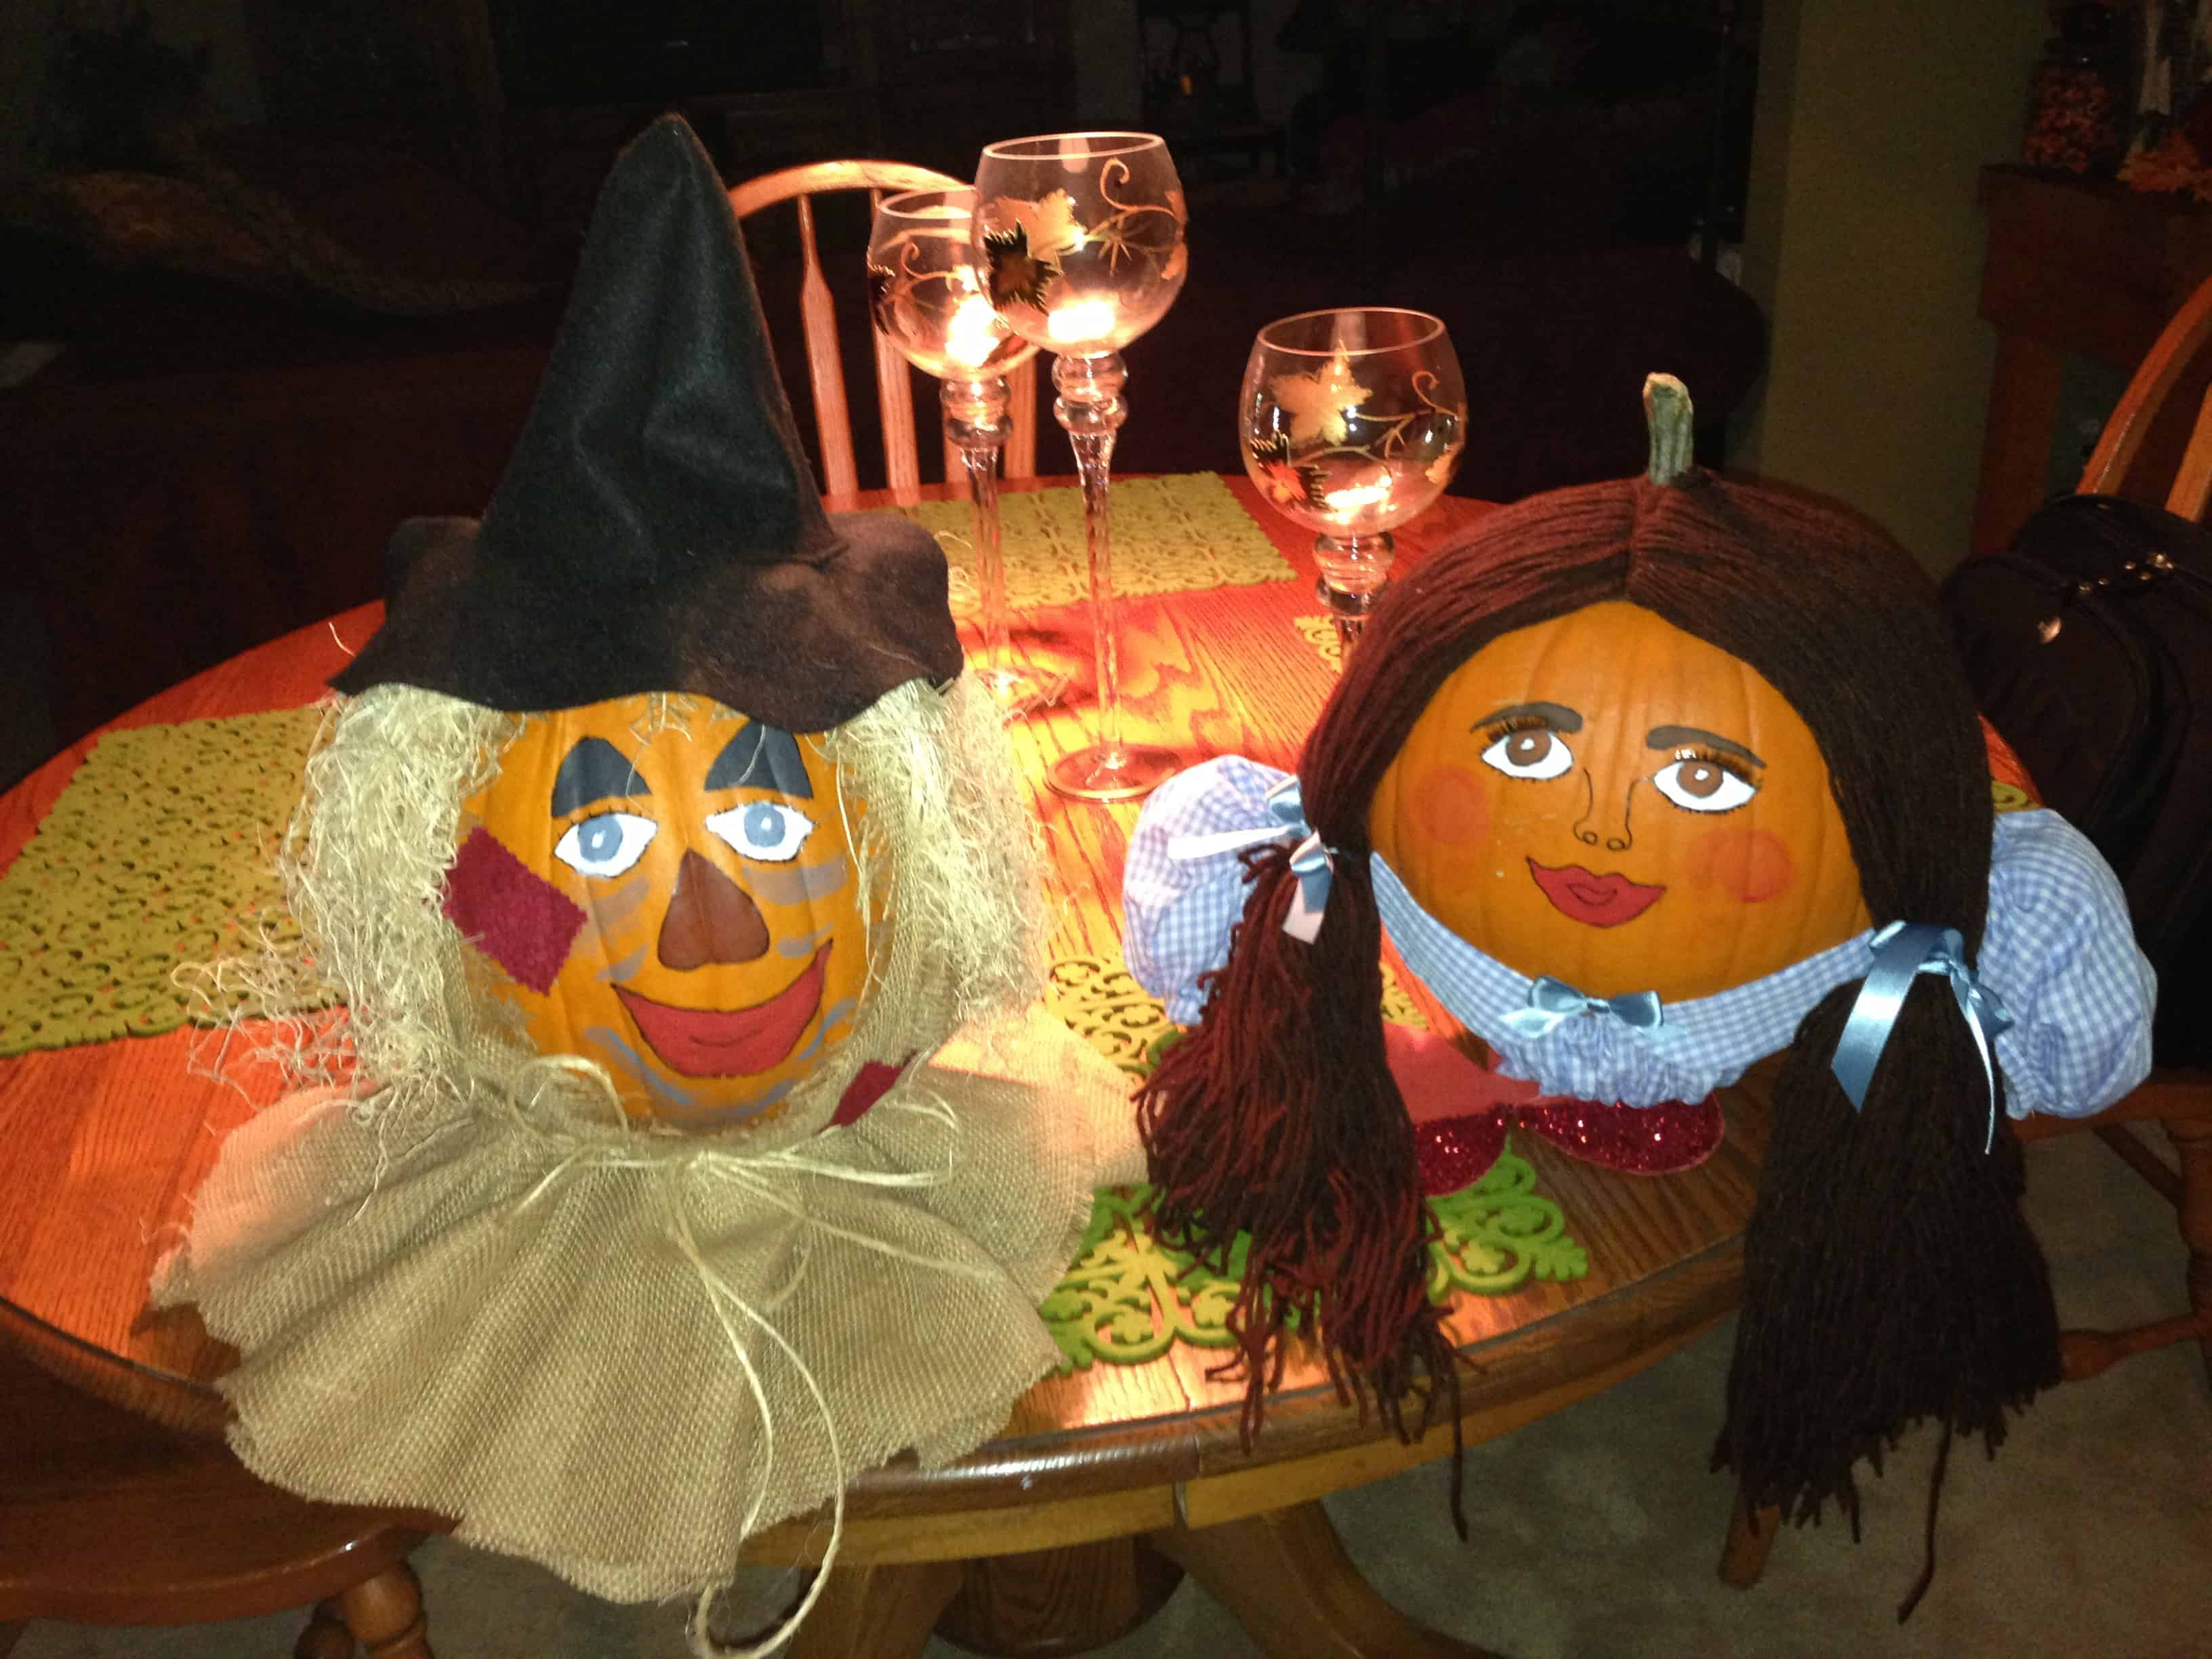 Wizard of oz themed pumpkin scarecrows